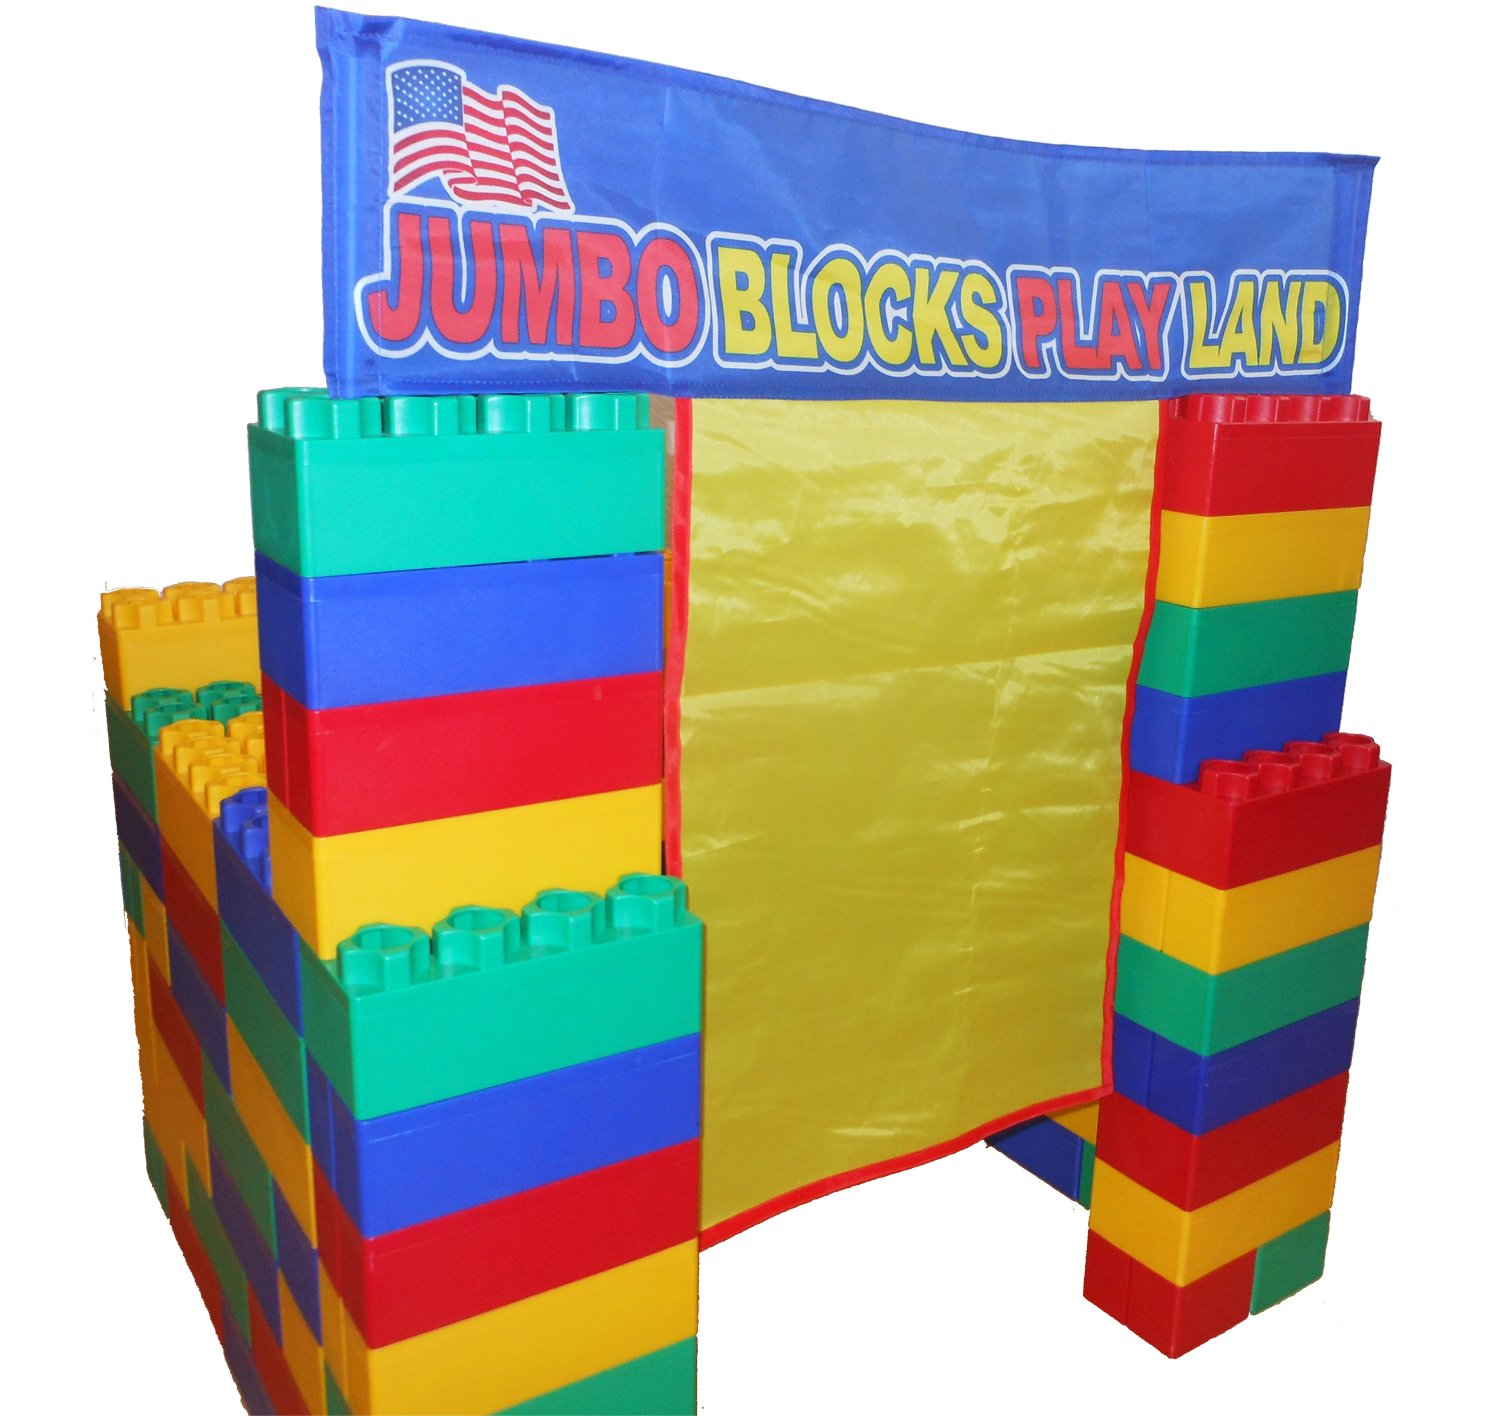 Amazon 99pc Playhouse Jumbo Blocks Playland Made in the USA